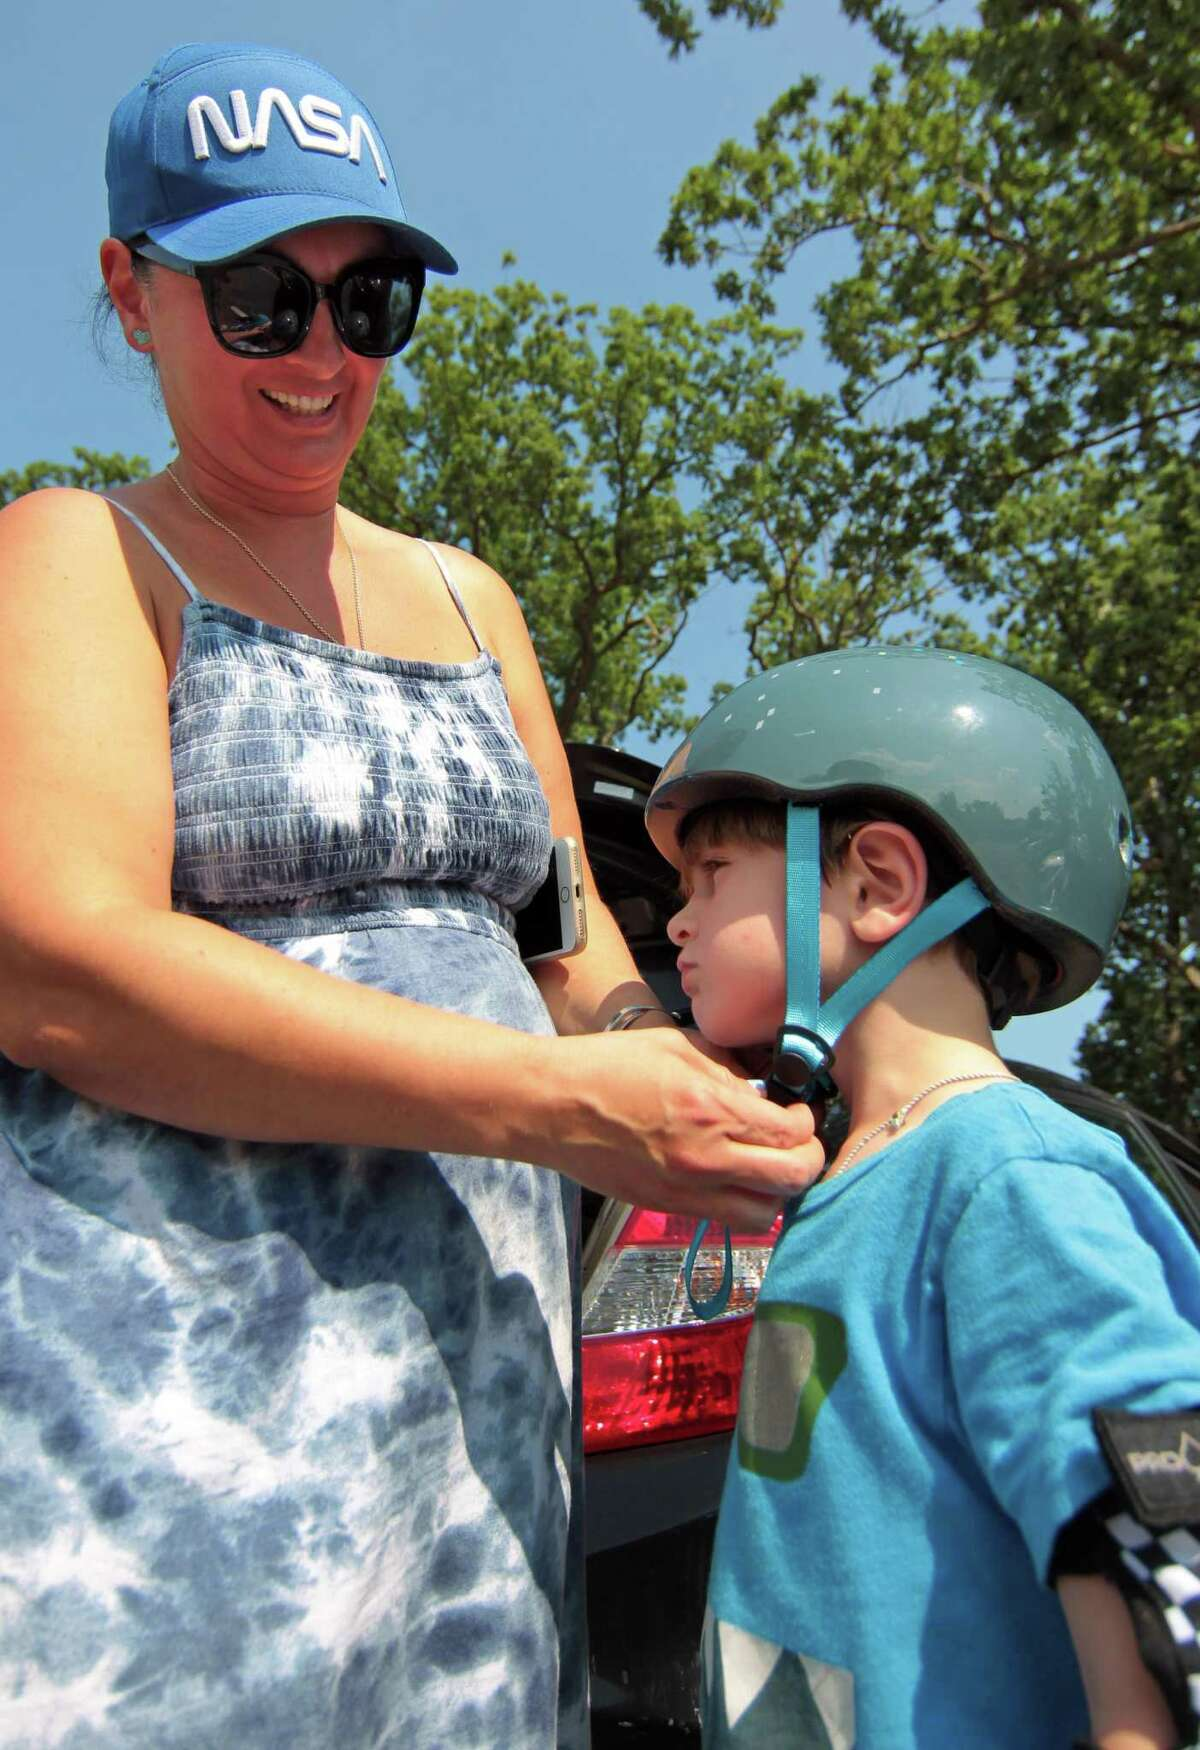 Nico Bakuradze, 4, gets help with his helmet from his mom Sophia before he plays at the skateboarding park at Scalzi Park in Stamford, Conn., on Saturday August 6, 2021.